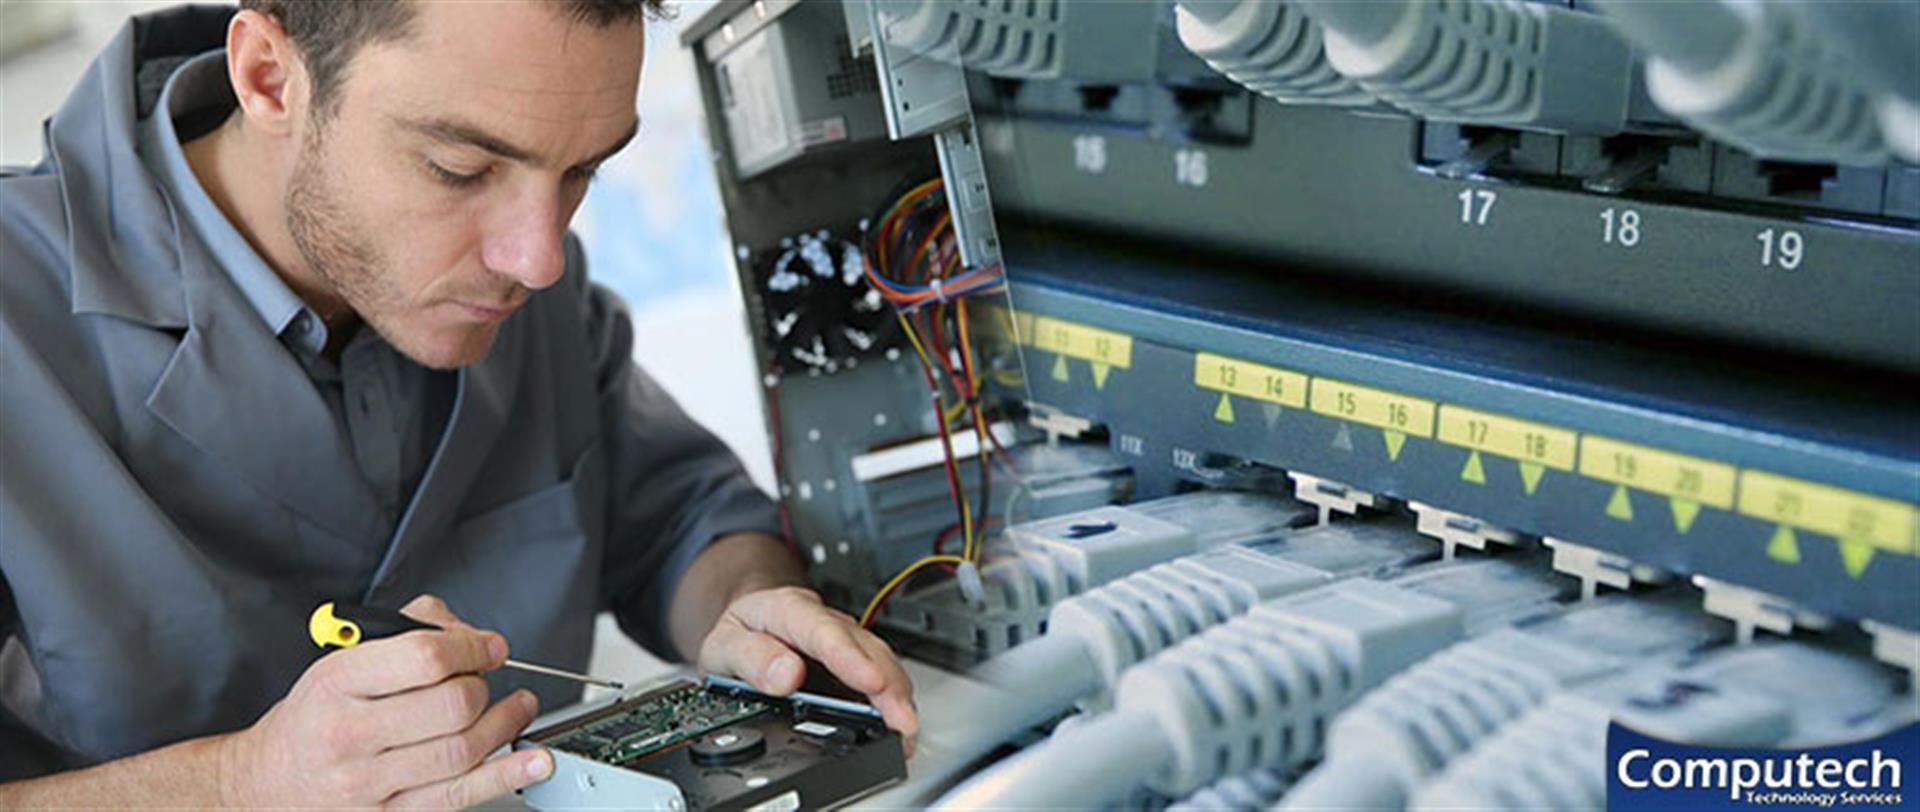 Demopolis Alabama On-Site PC & Printer Repair, Networking, Telecom & Data Inside Wiring Services